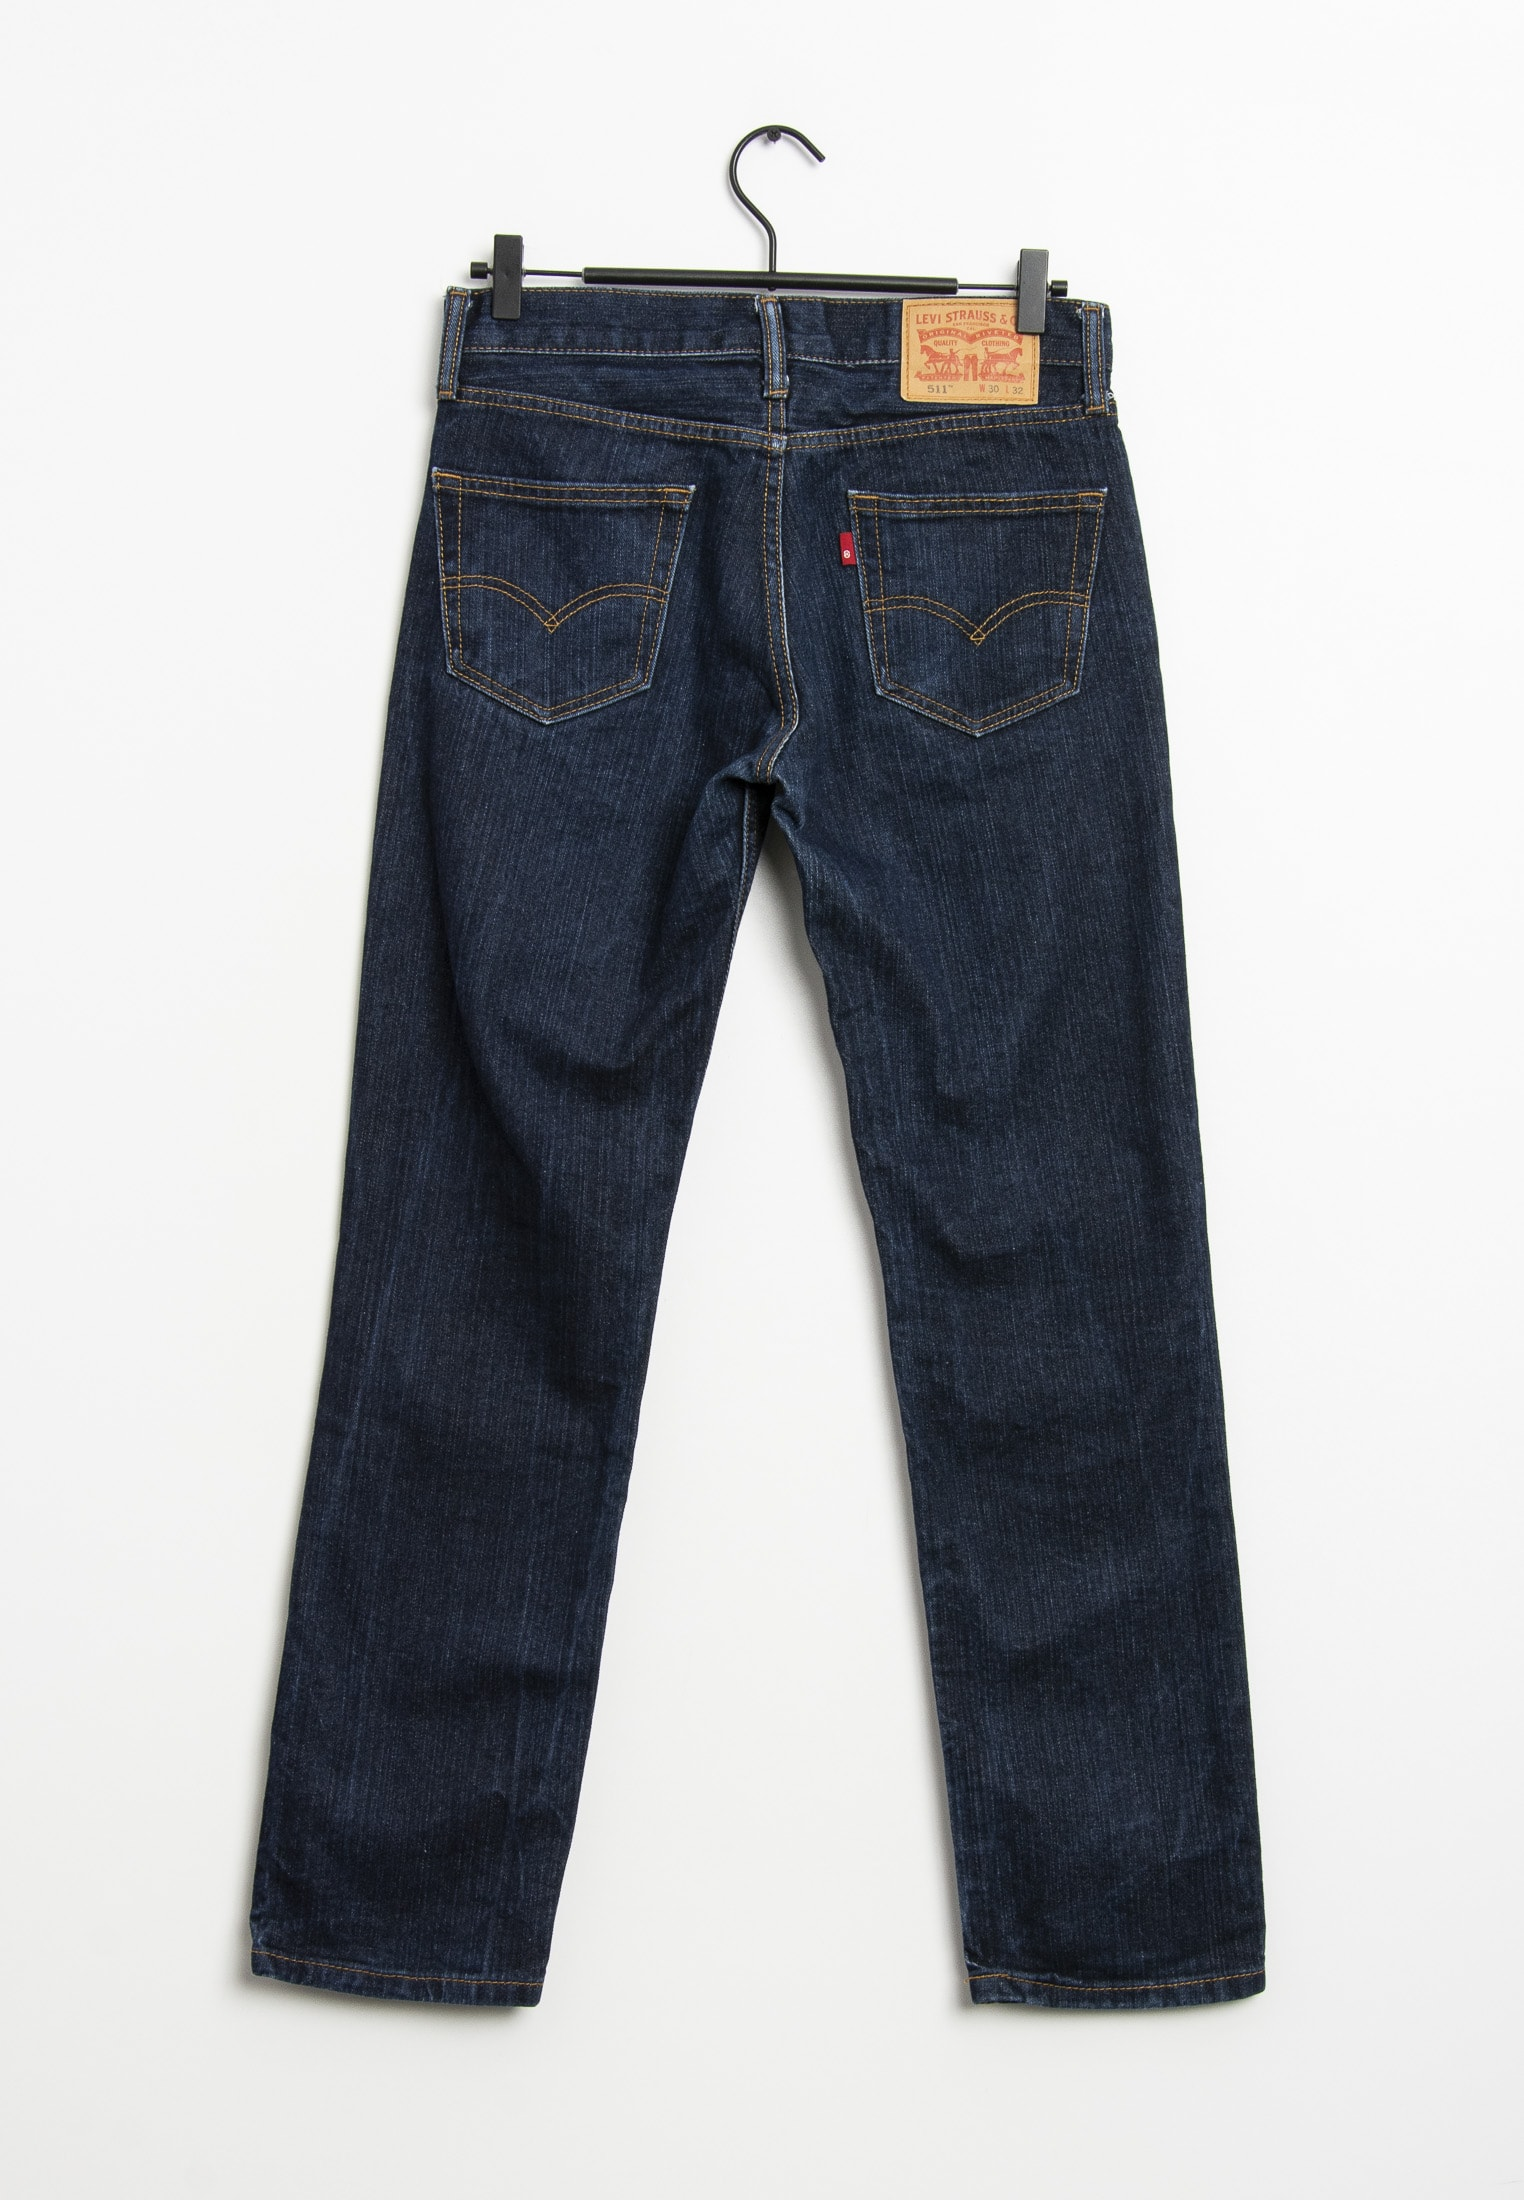 Levi's® Engineered Jeans Jeans Blau Gr.30X32